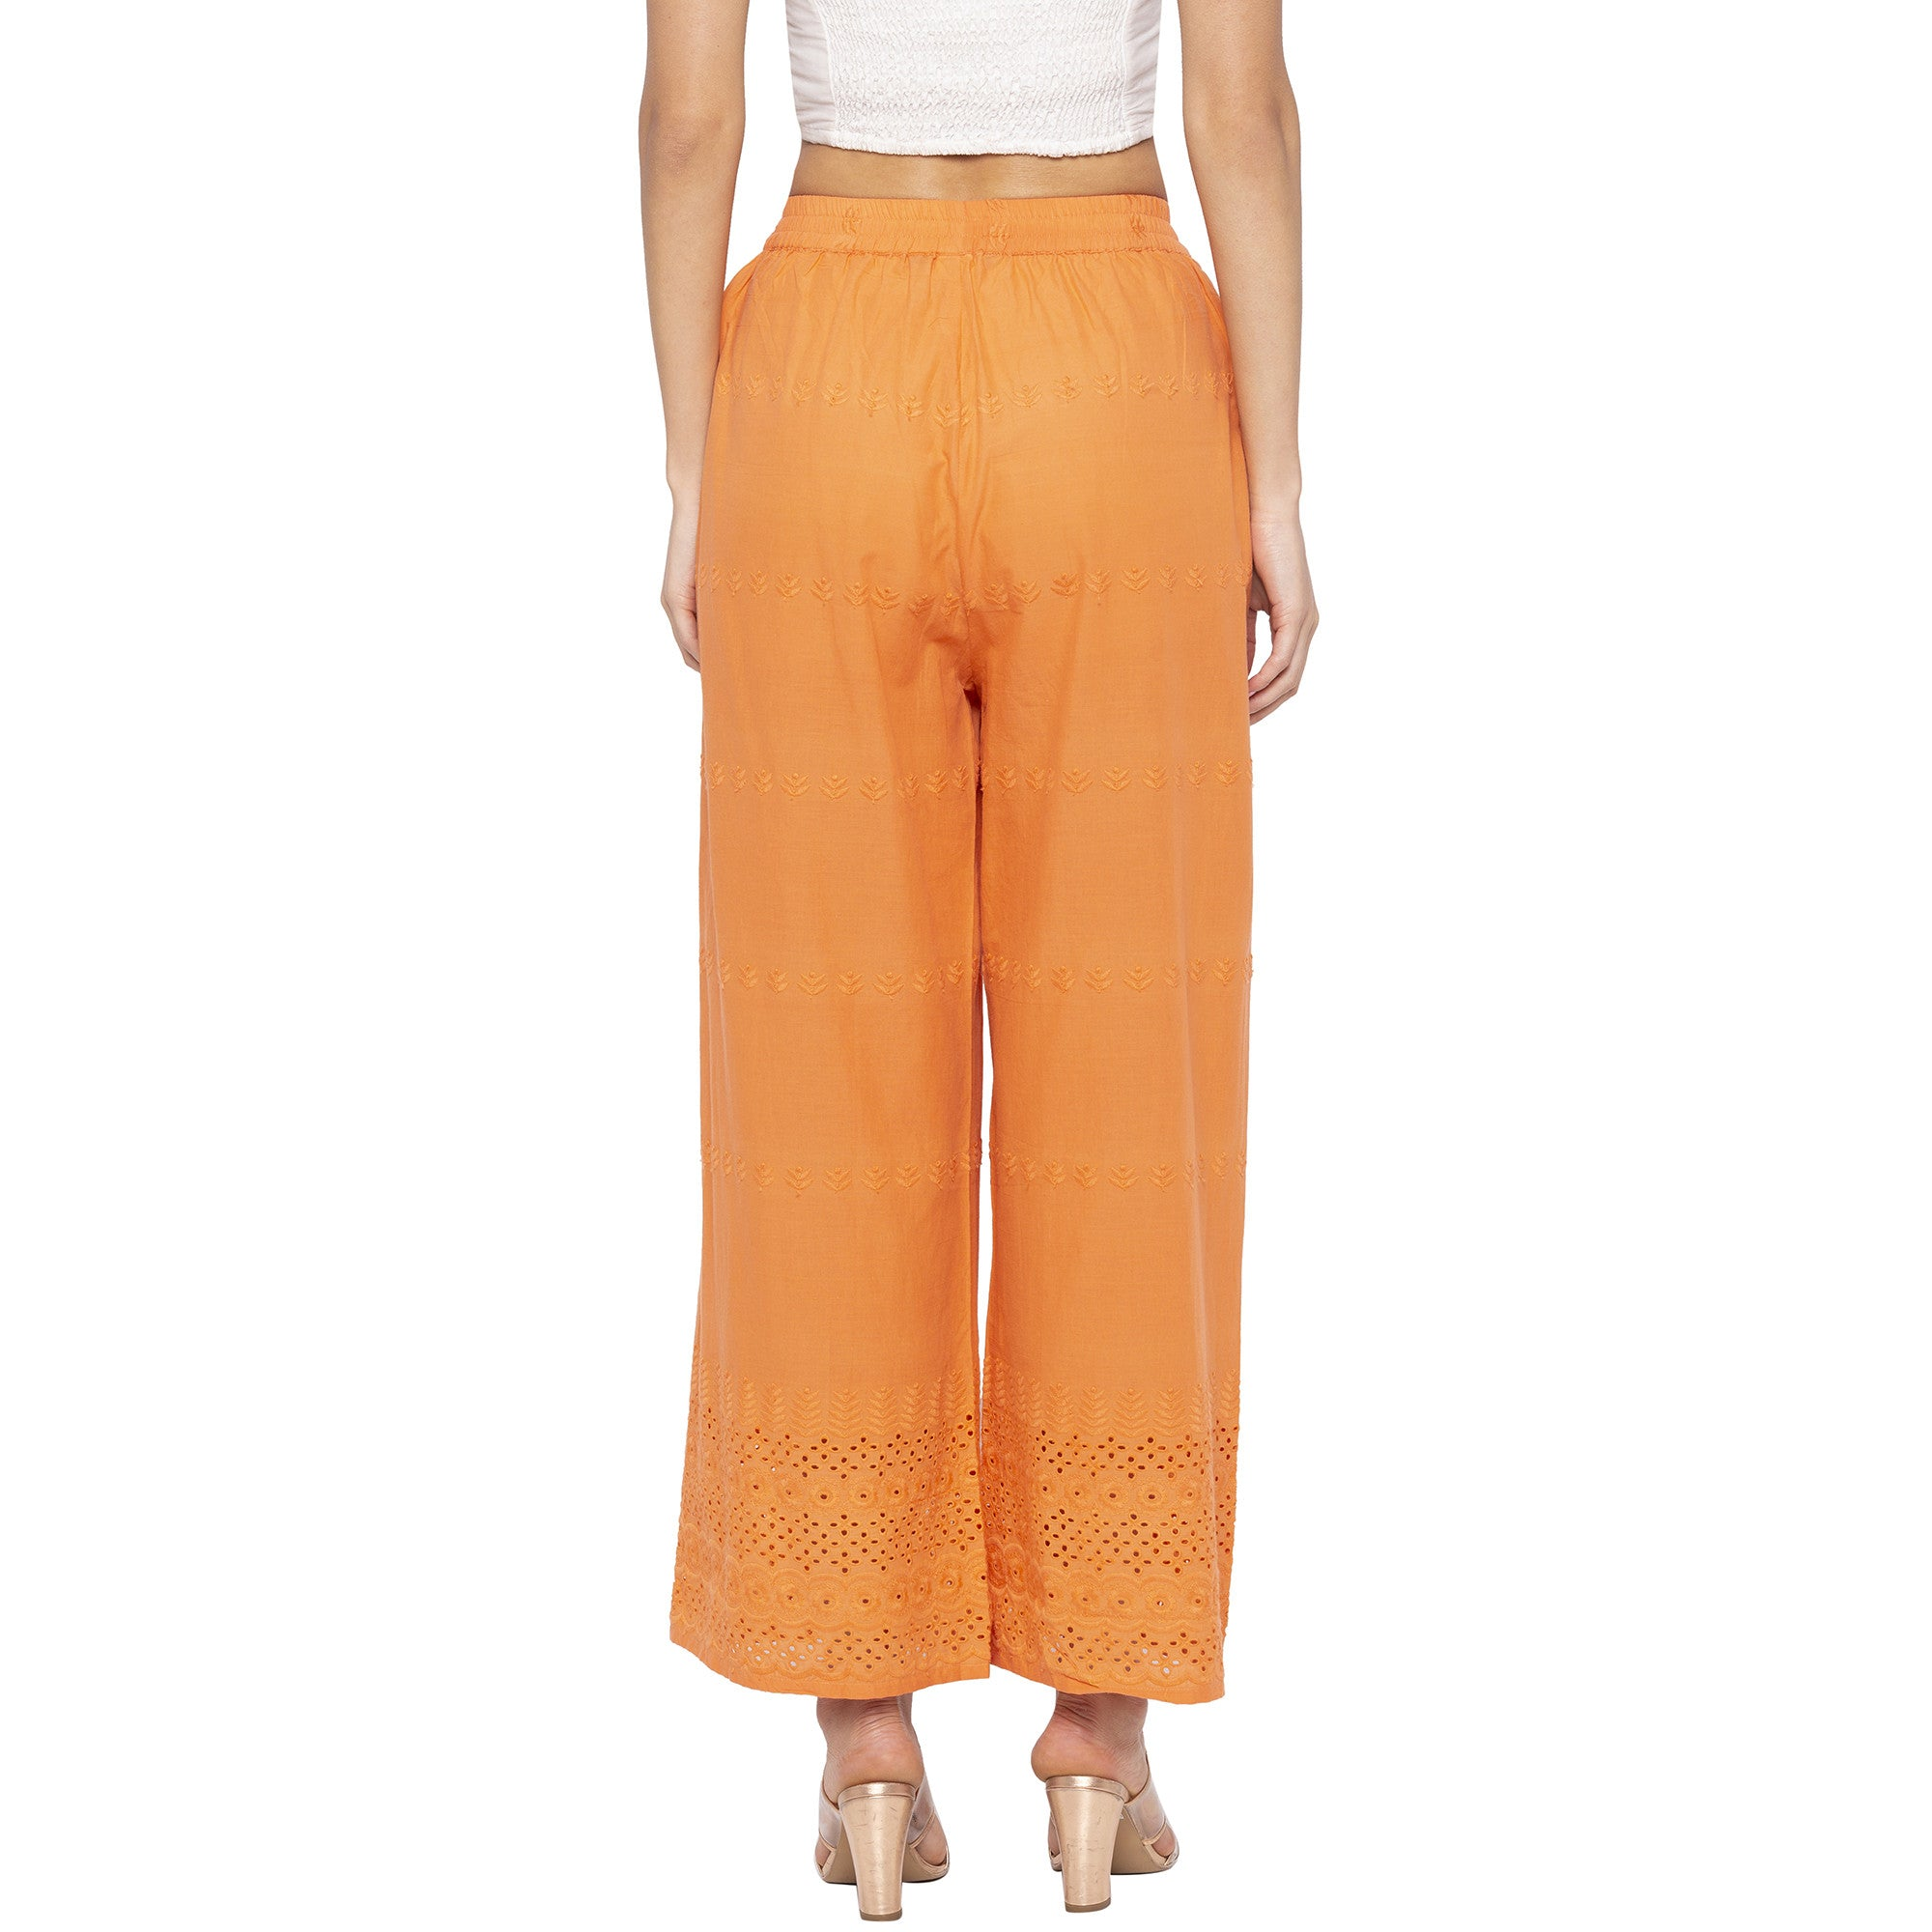 Casual Orange Color Loose Fit Regular Parallel Trousers-3